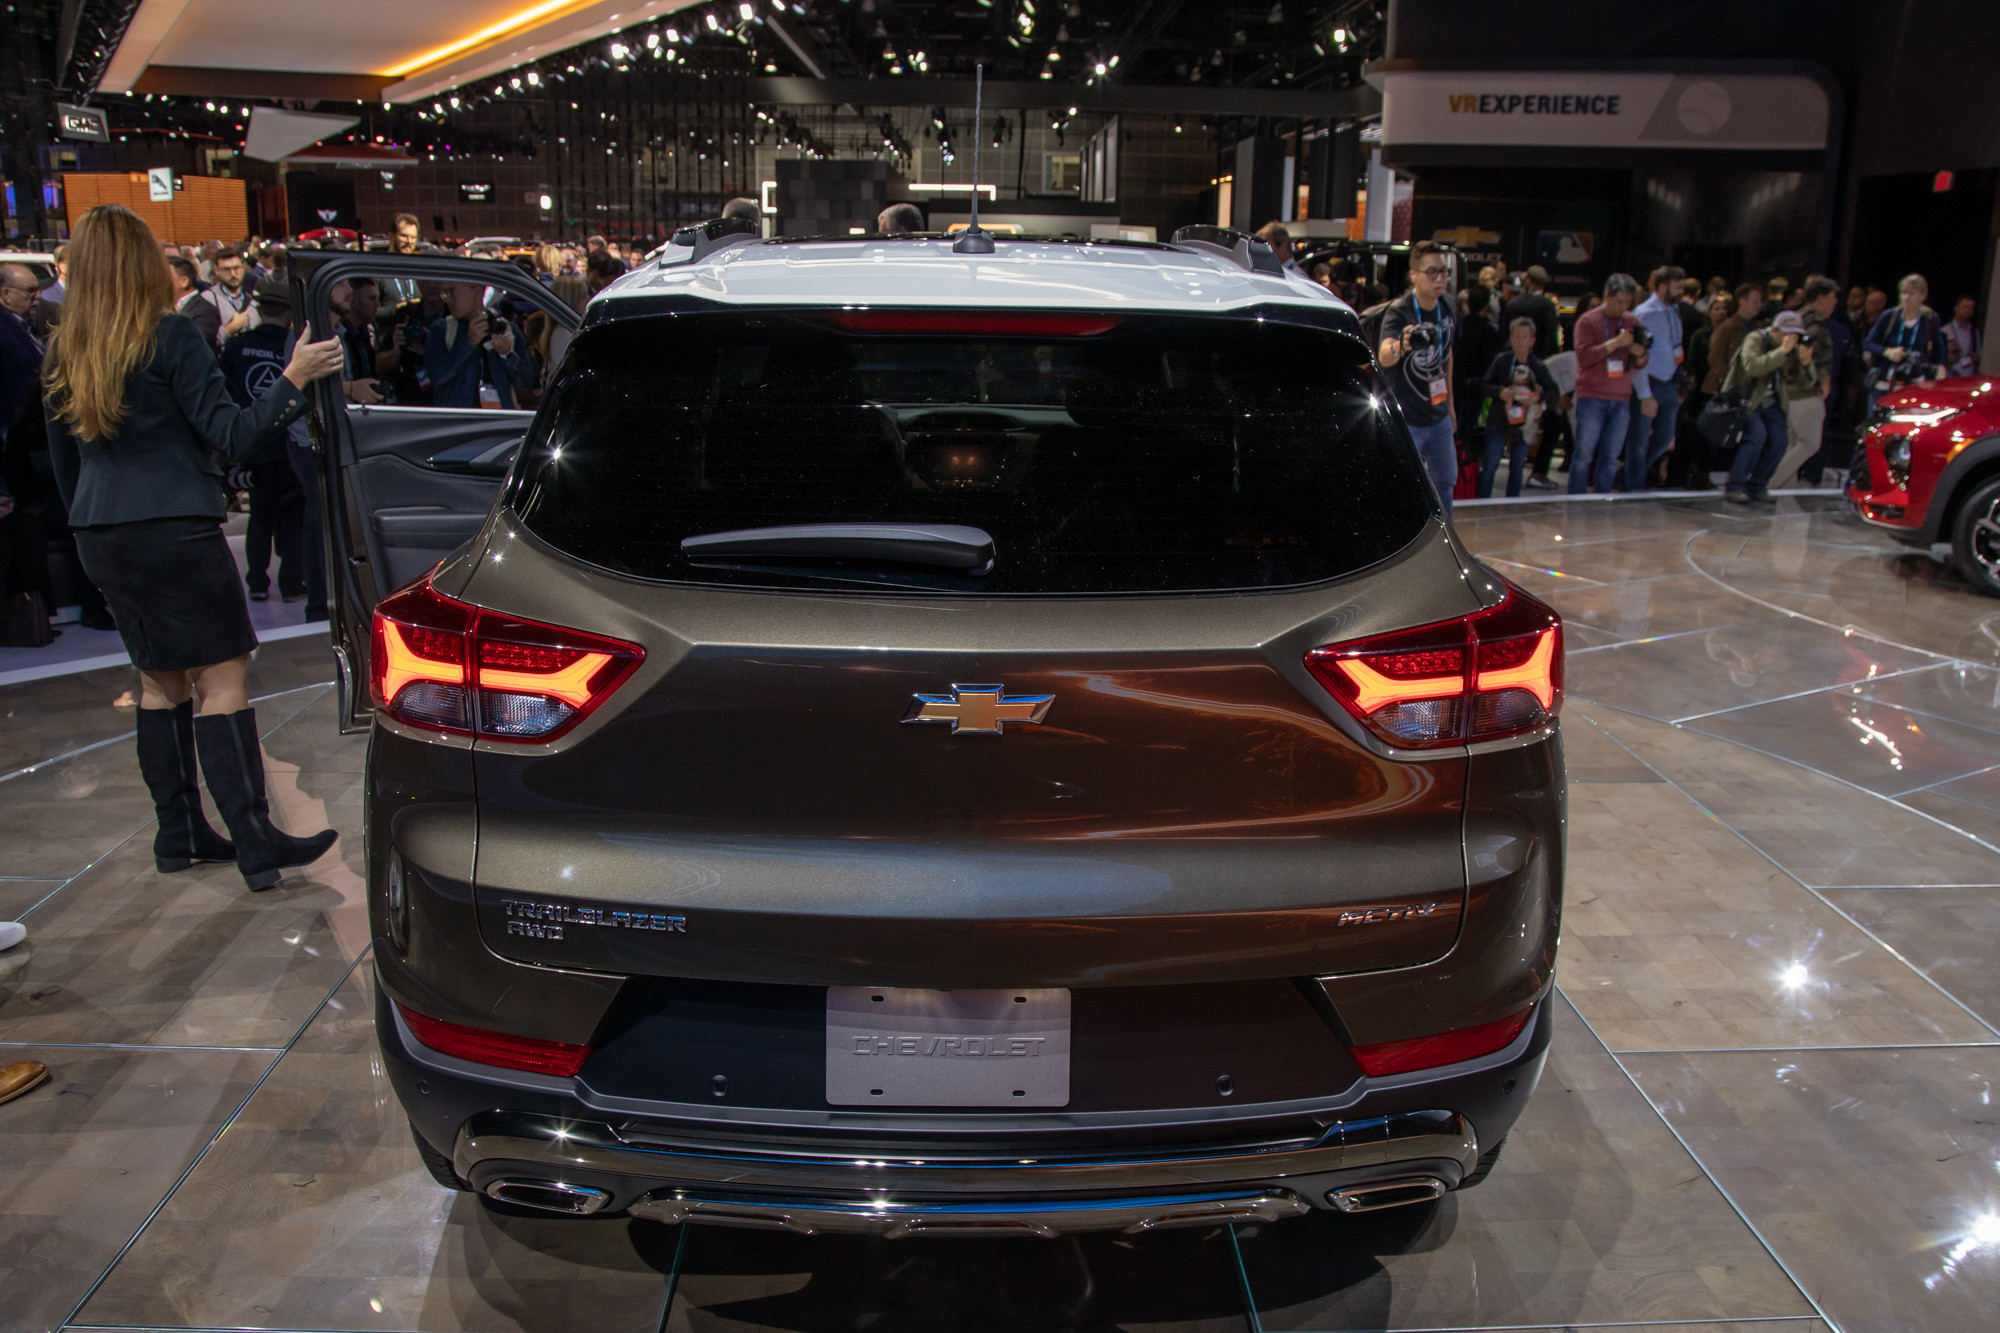 2021 Chevrolet Trailblazer: Taking the Road More Traveled